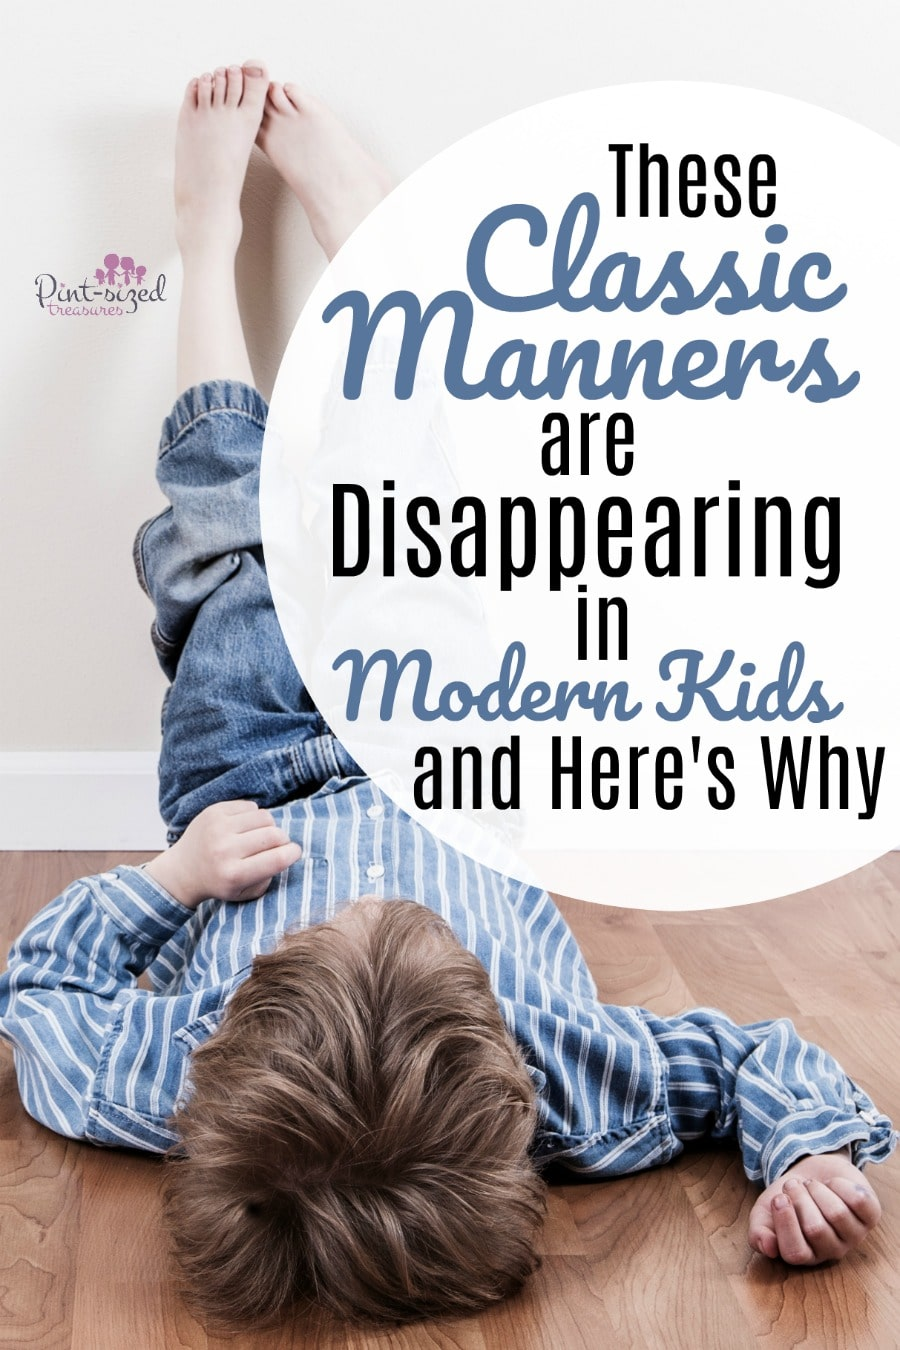 Classic good manners that modern kids don't have anymore! Find out what they are and how YOU can teach these good manners to your modern kids!